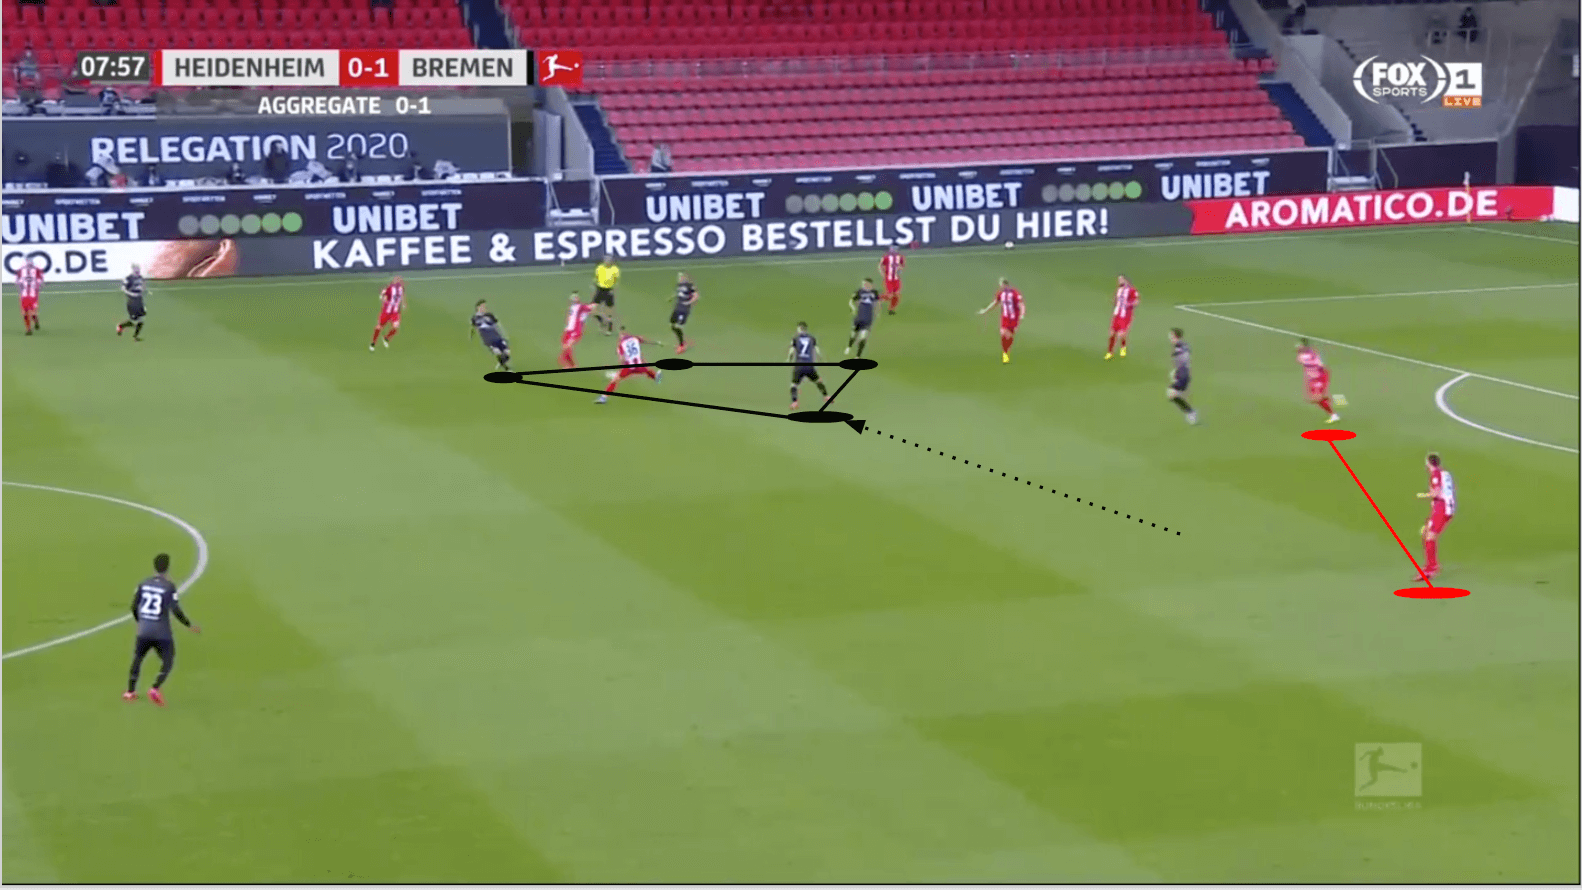 Bundesliga 2019/20: 1. FC Heidenheim vs Werder Bremen - tactical analysis tactics